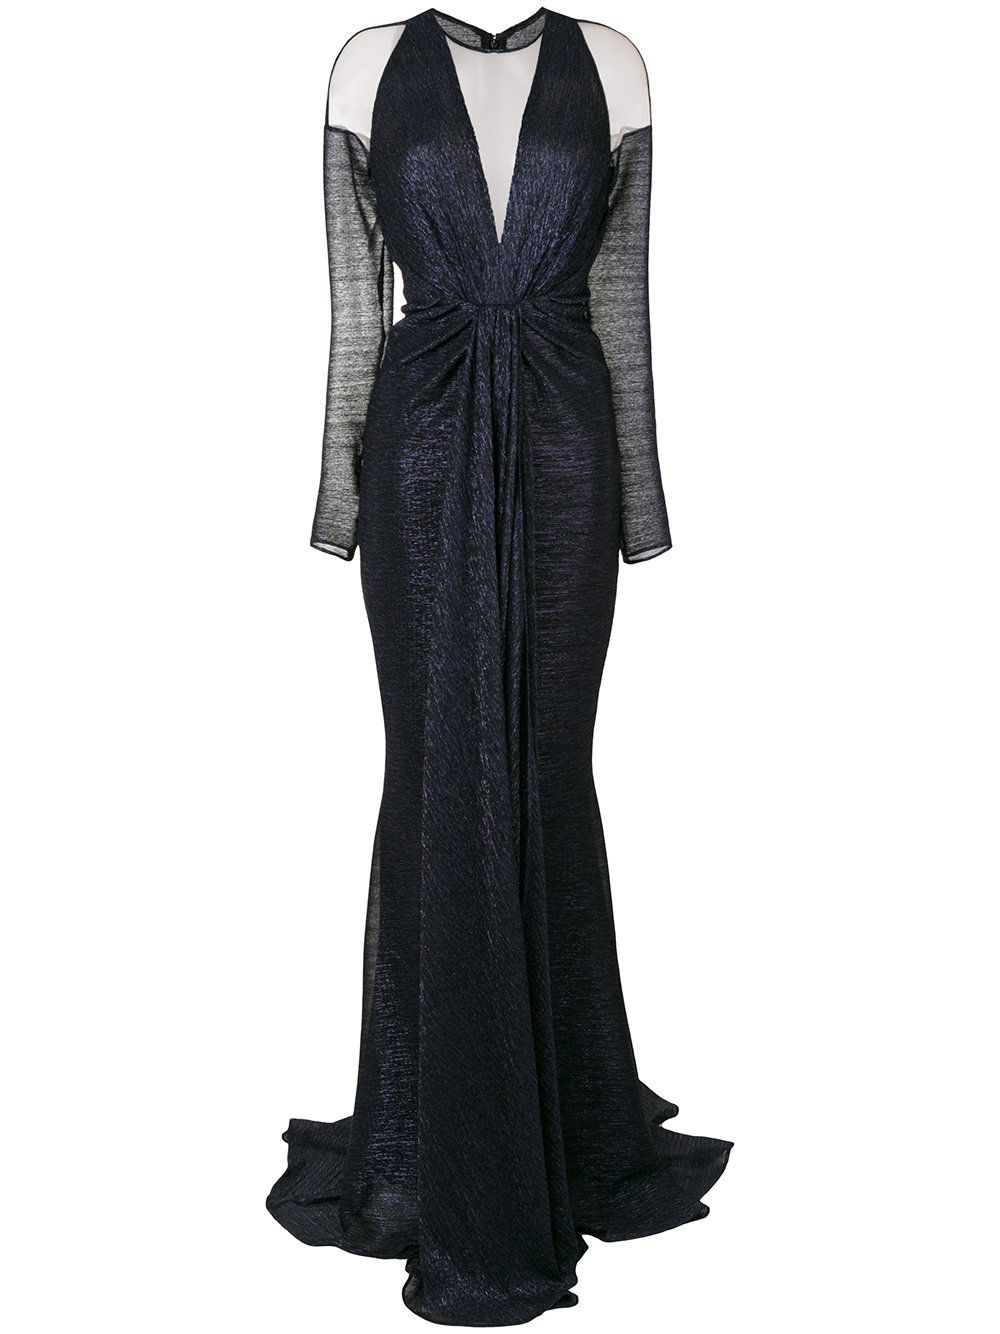 Talbot Runhof Nominee Fitted Gown Farfetch Long Sleeve Cocktail Dress Dresses Black Ball Gown [ 1334 x 1000 Pixel ]